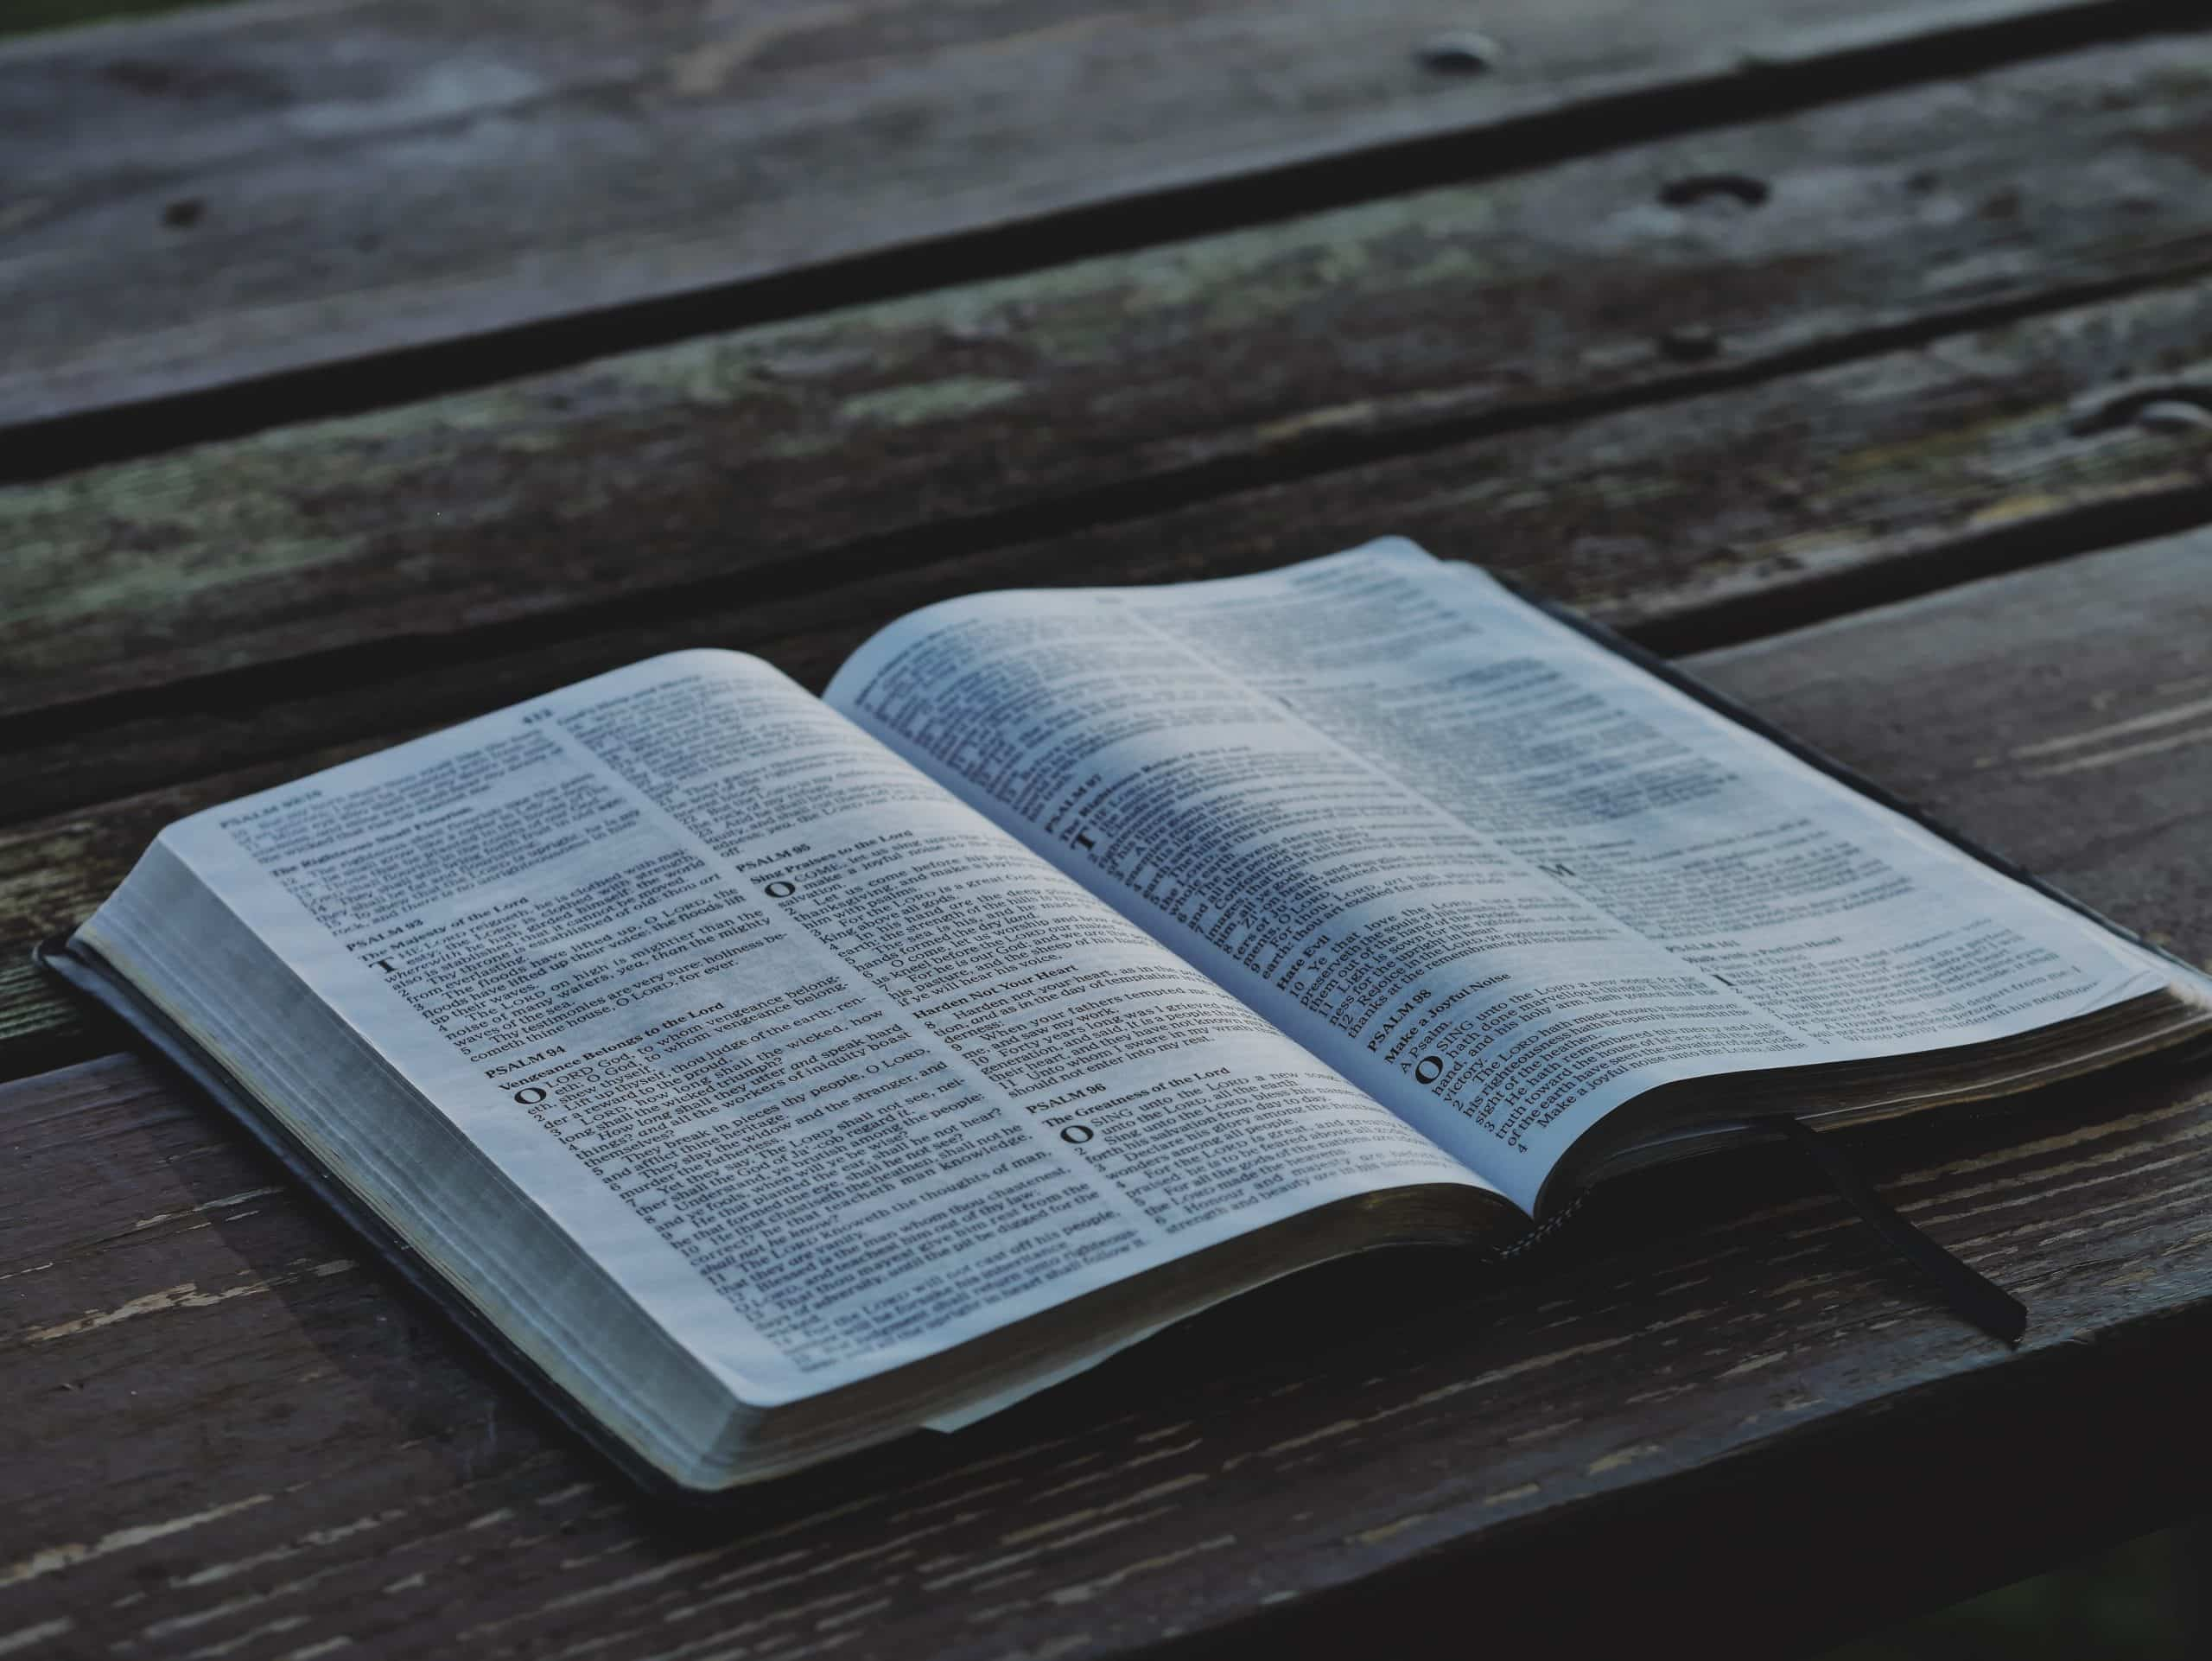 dangers of taking scripture out of context